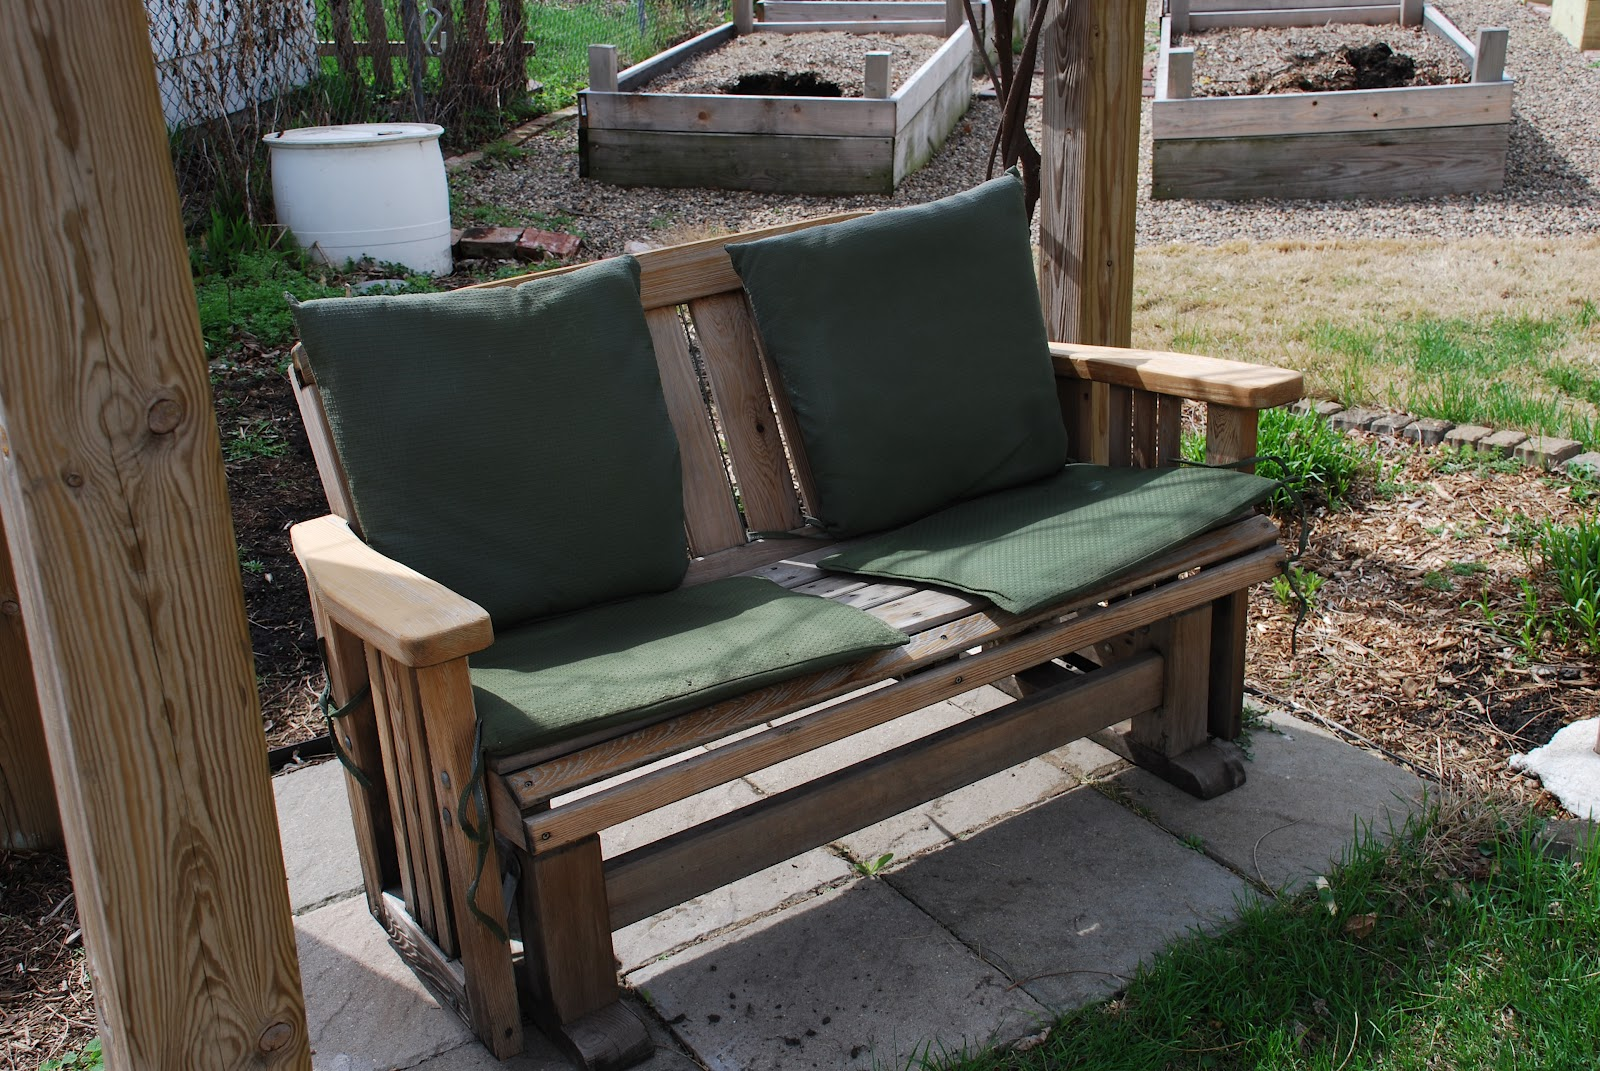 And That Gave Me The Brilliant Idea  Why Not Convert The Glider(which I  Didnu0027t Really Like)  To A Porch Swing?